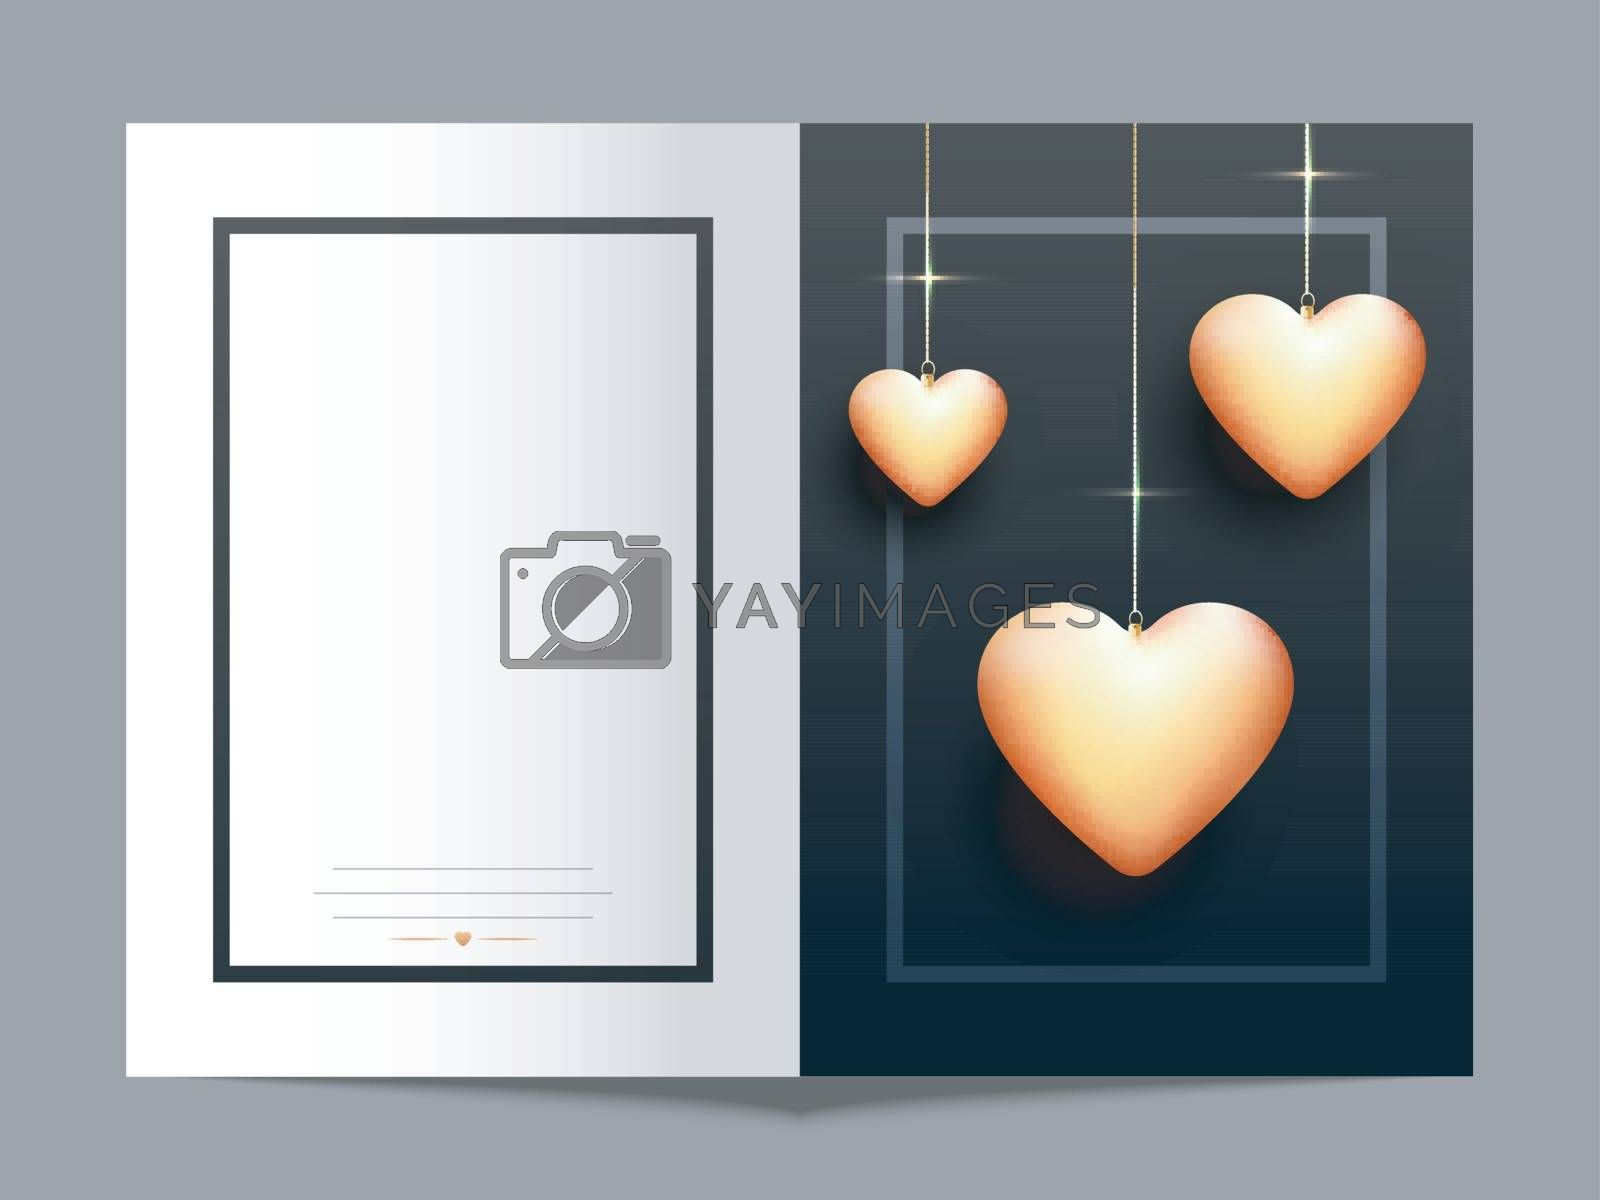 Beautiful Glossy Hearts decorated greeting card design for Happy Valentine's Day celebration.